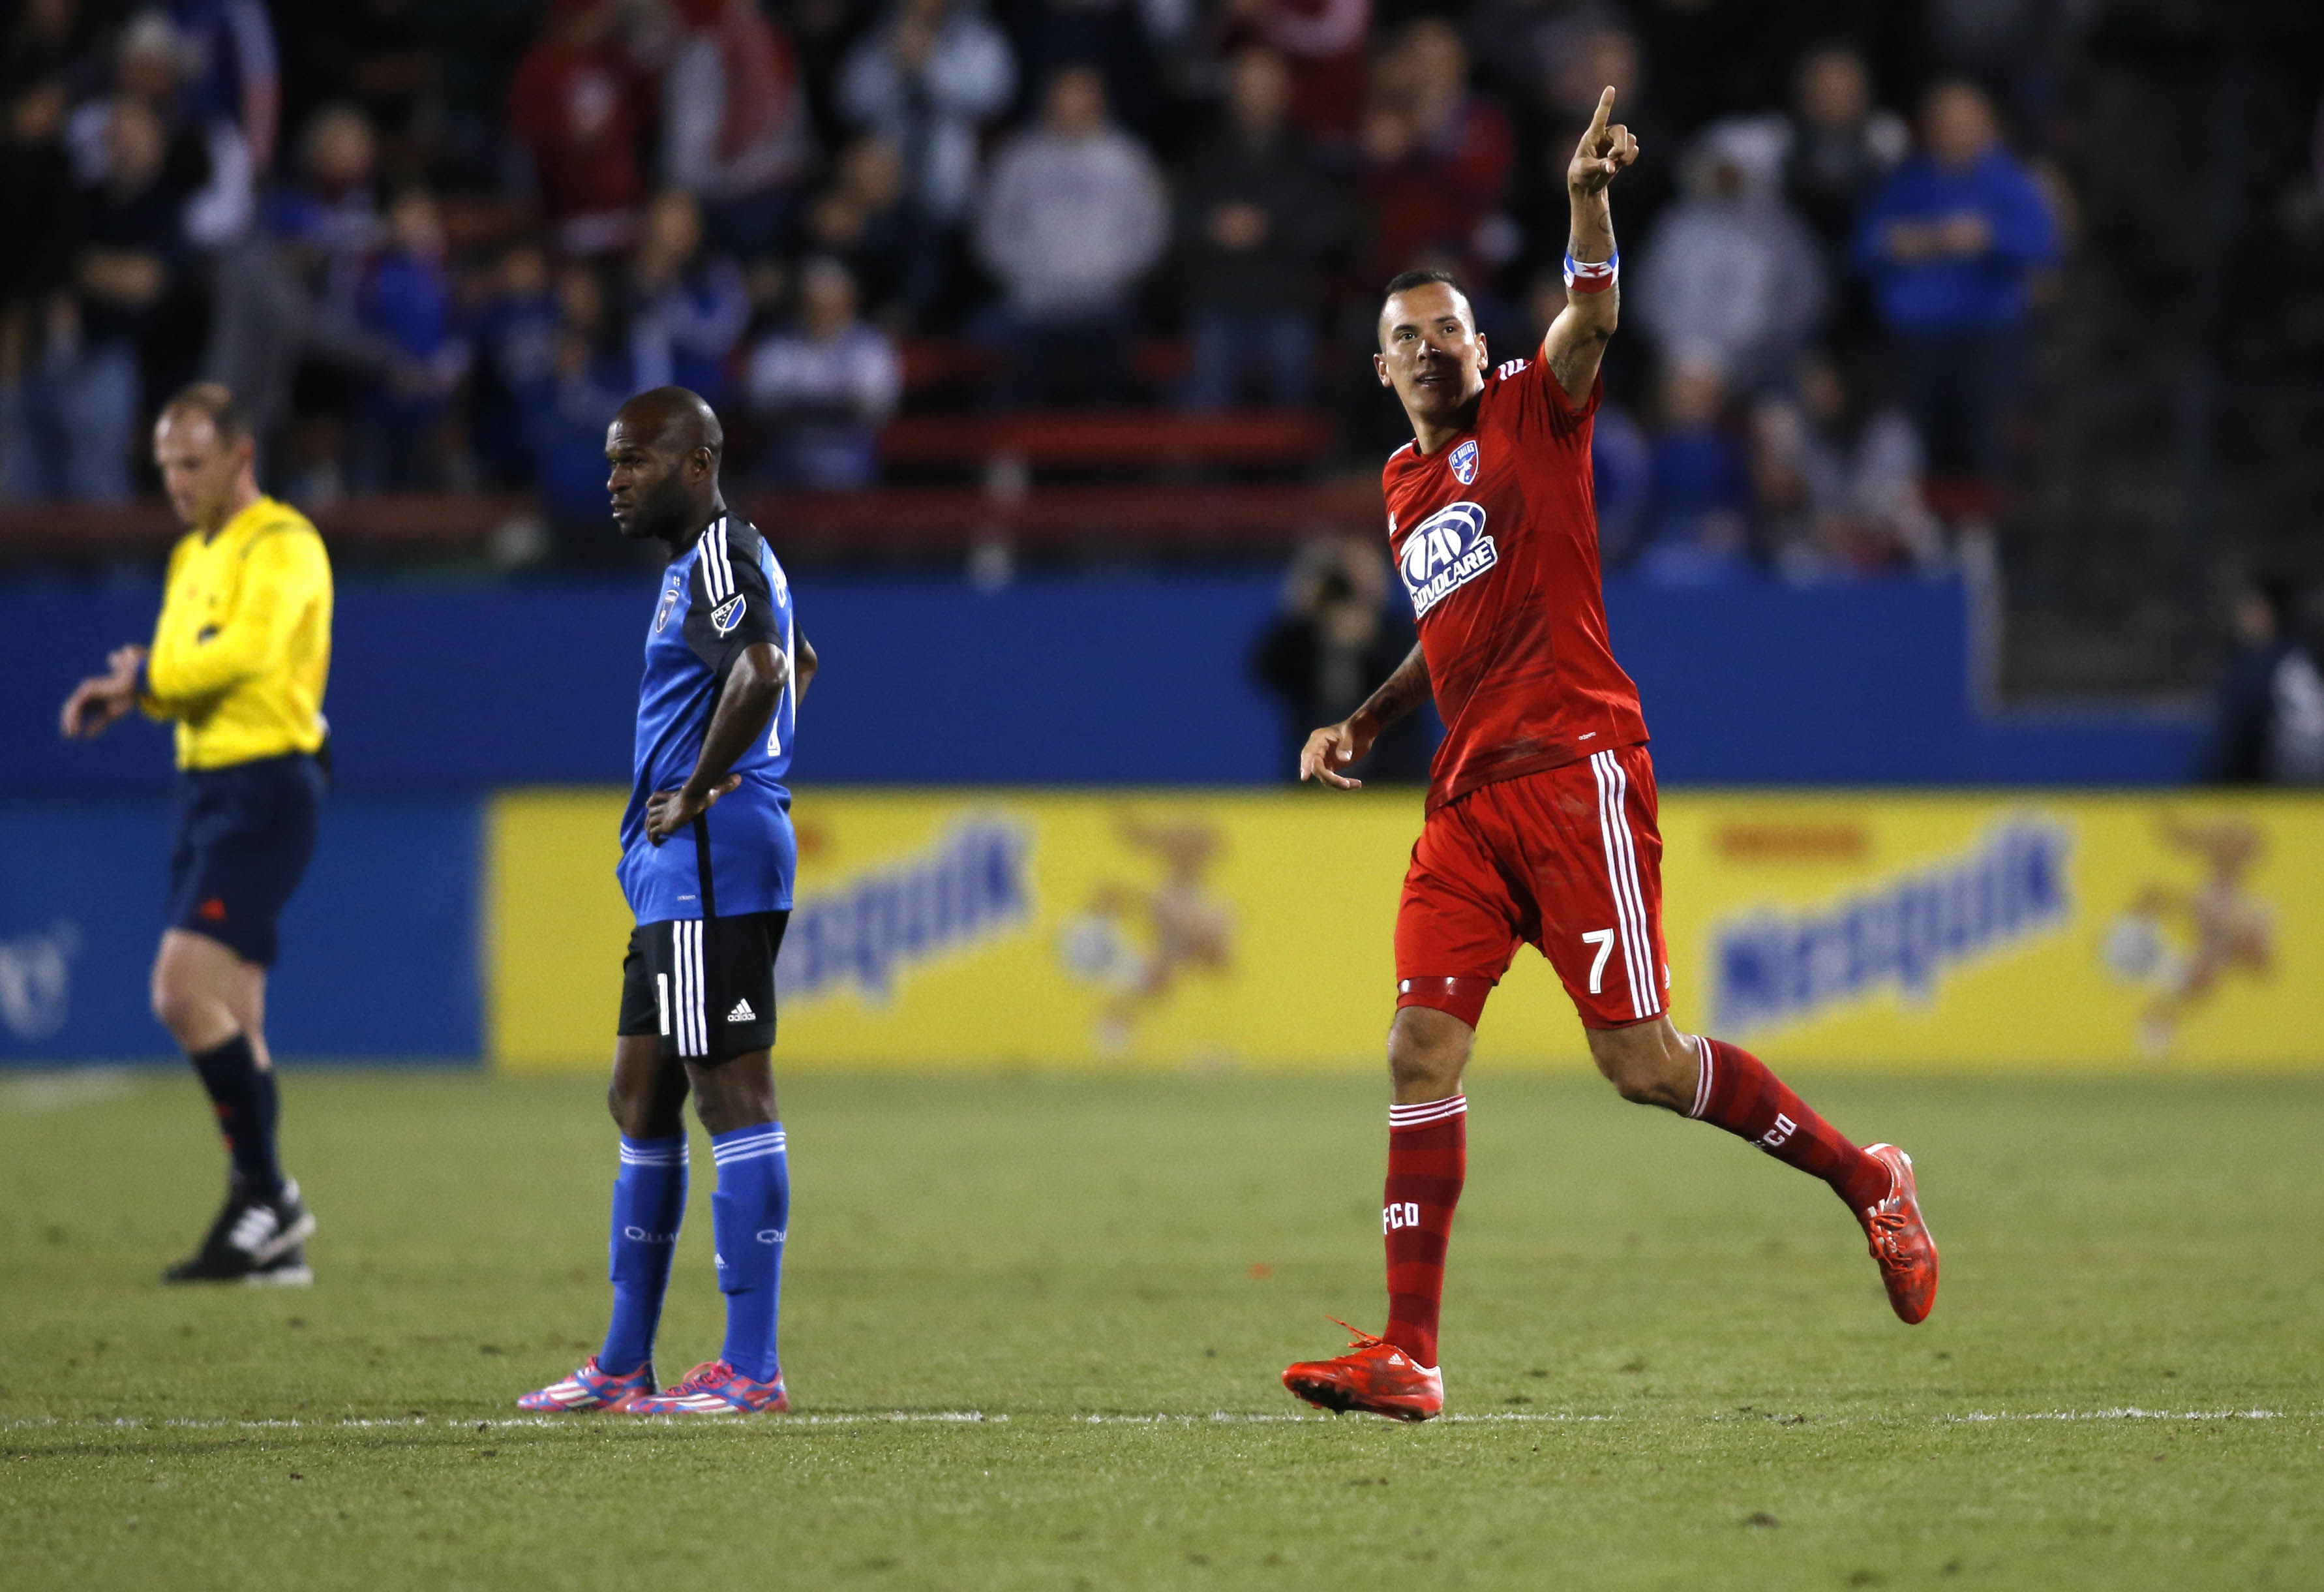 Perez celebrated while the Quakes rued another lost opportunity